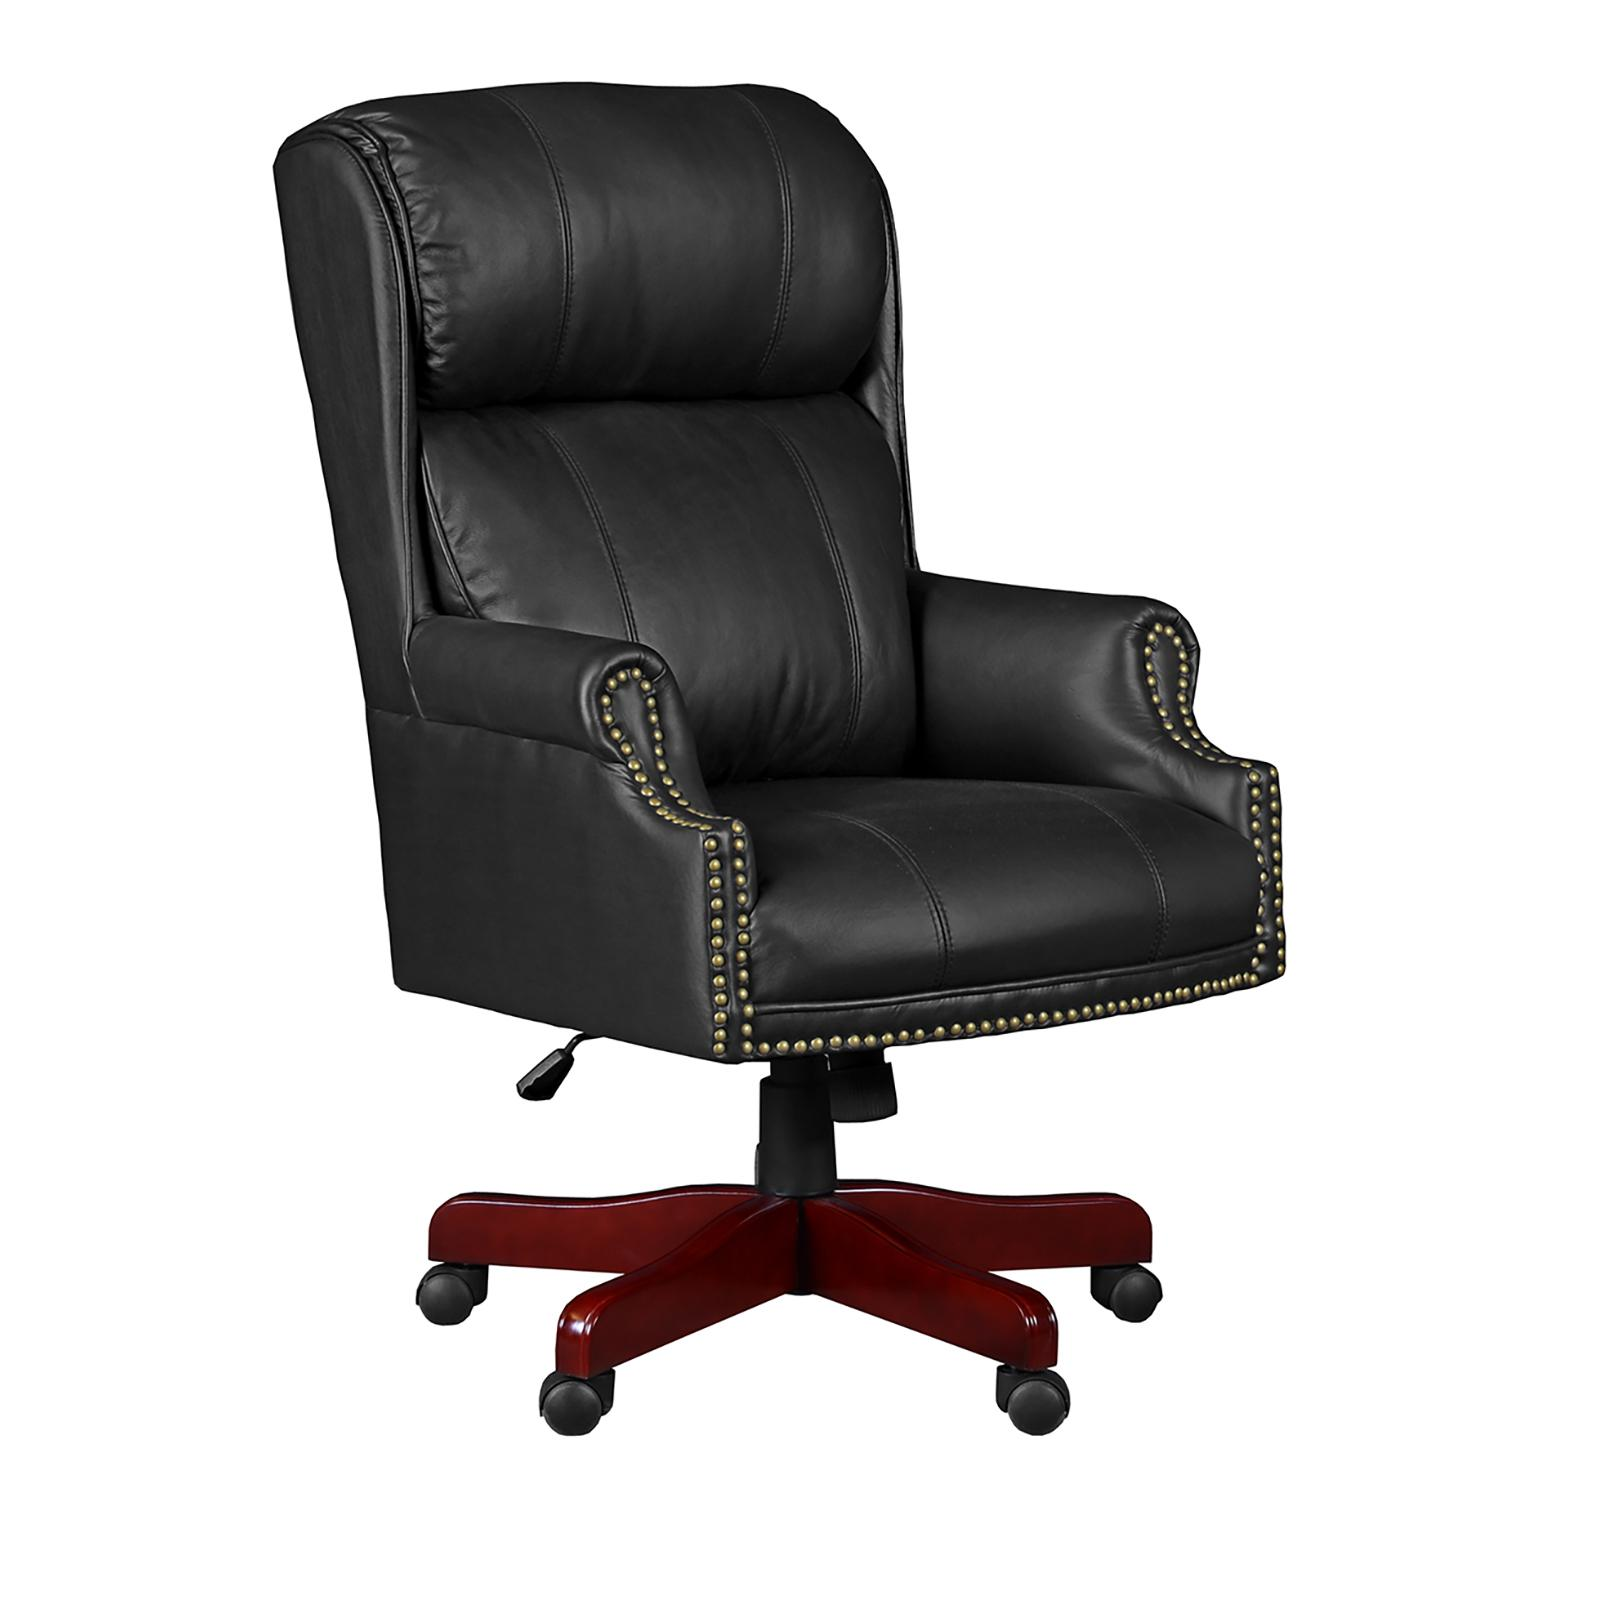 Regency Seating Barrington Height Adjustable Swivel Chair with Casters - Black Leather, 9099LBK